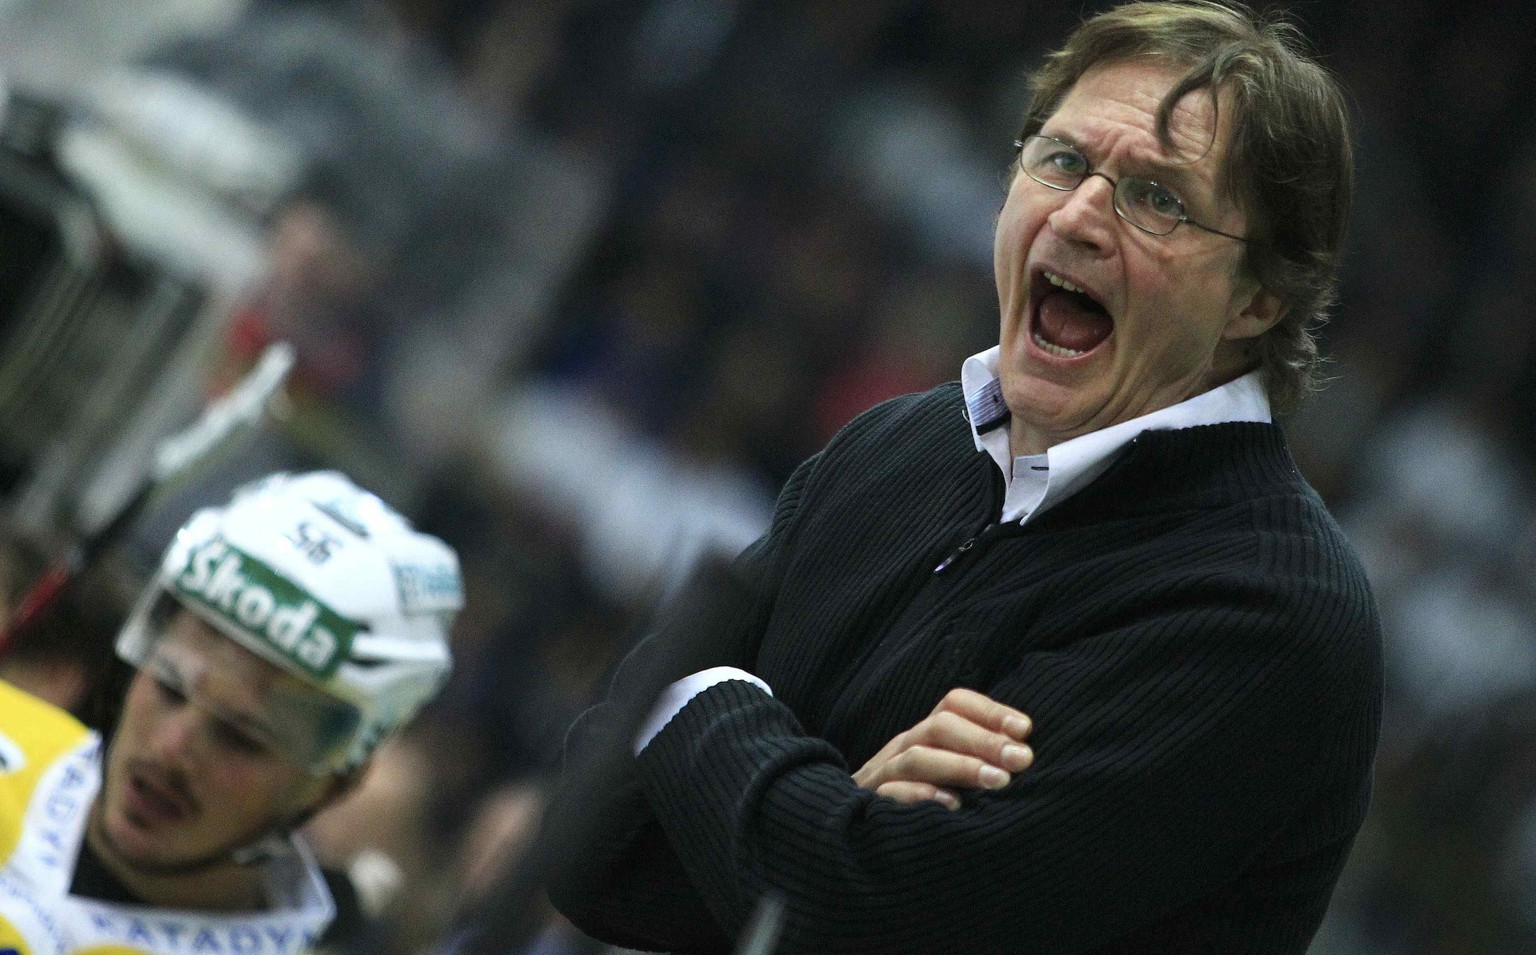 Coach Arno del Curto of HC Davos reacts during their Swiss ice hockey play-off final match against Kloten Flyers in Kloten near Zurich April 12, 2011. REUTERS/Miro Kuzmanovic (SWITZERLAND  - Tags: SPORT ICE HOCKEY)